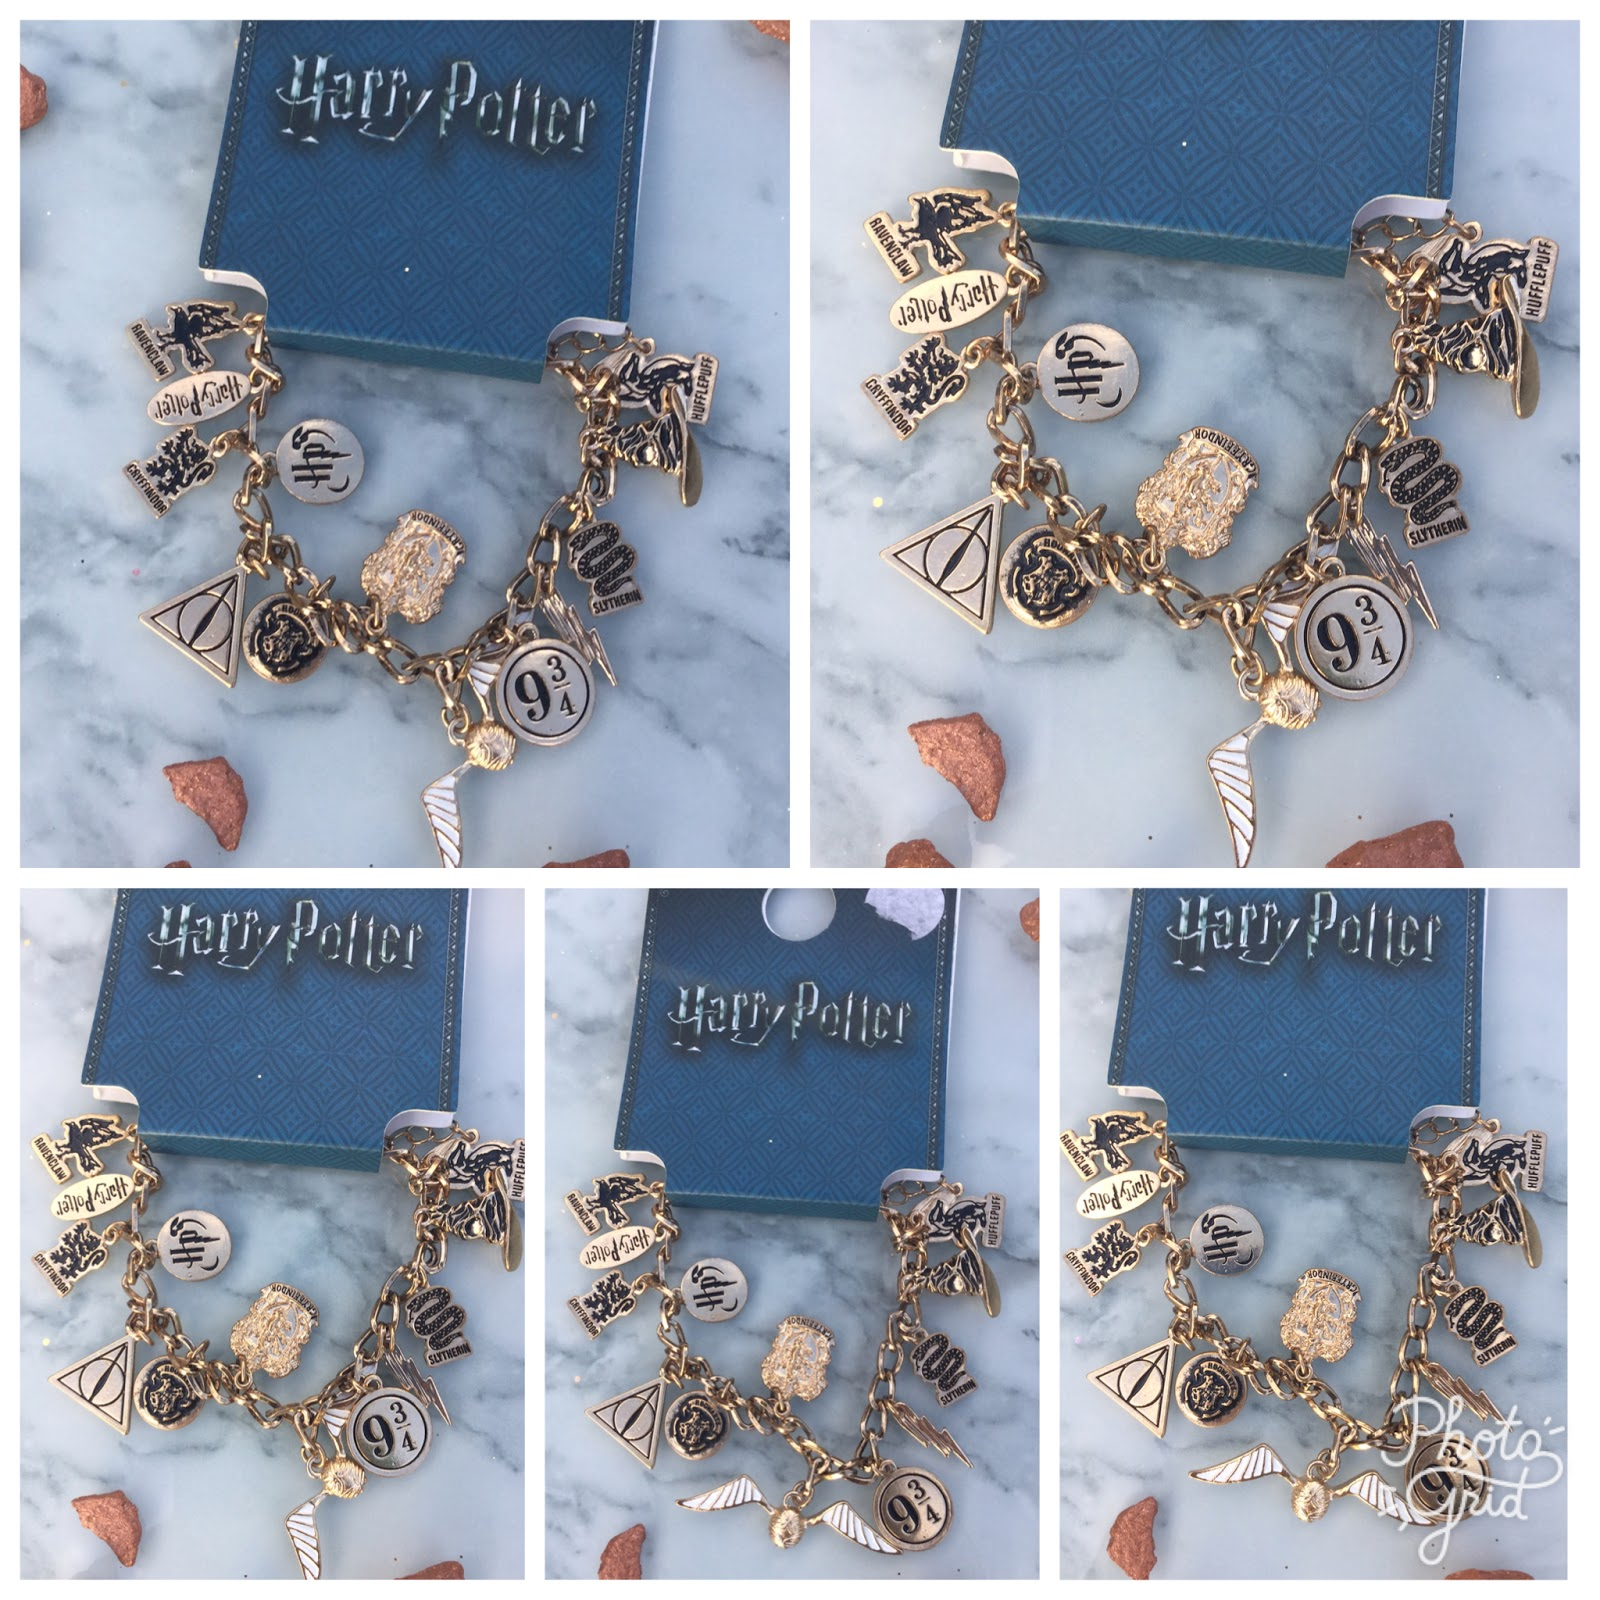 Win Harrypotter Primark Jewellery